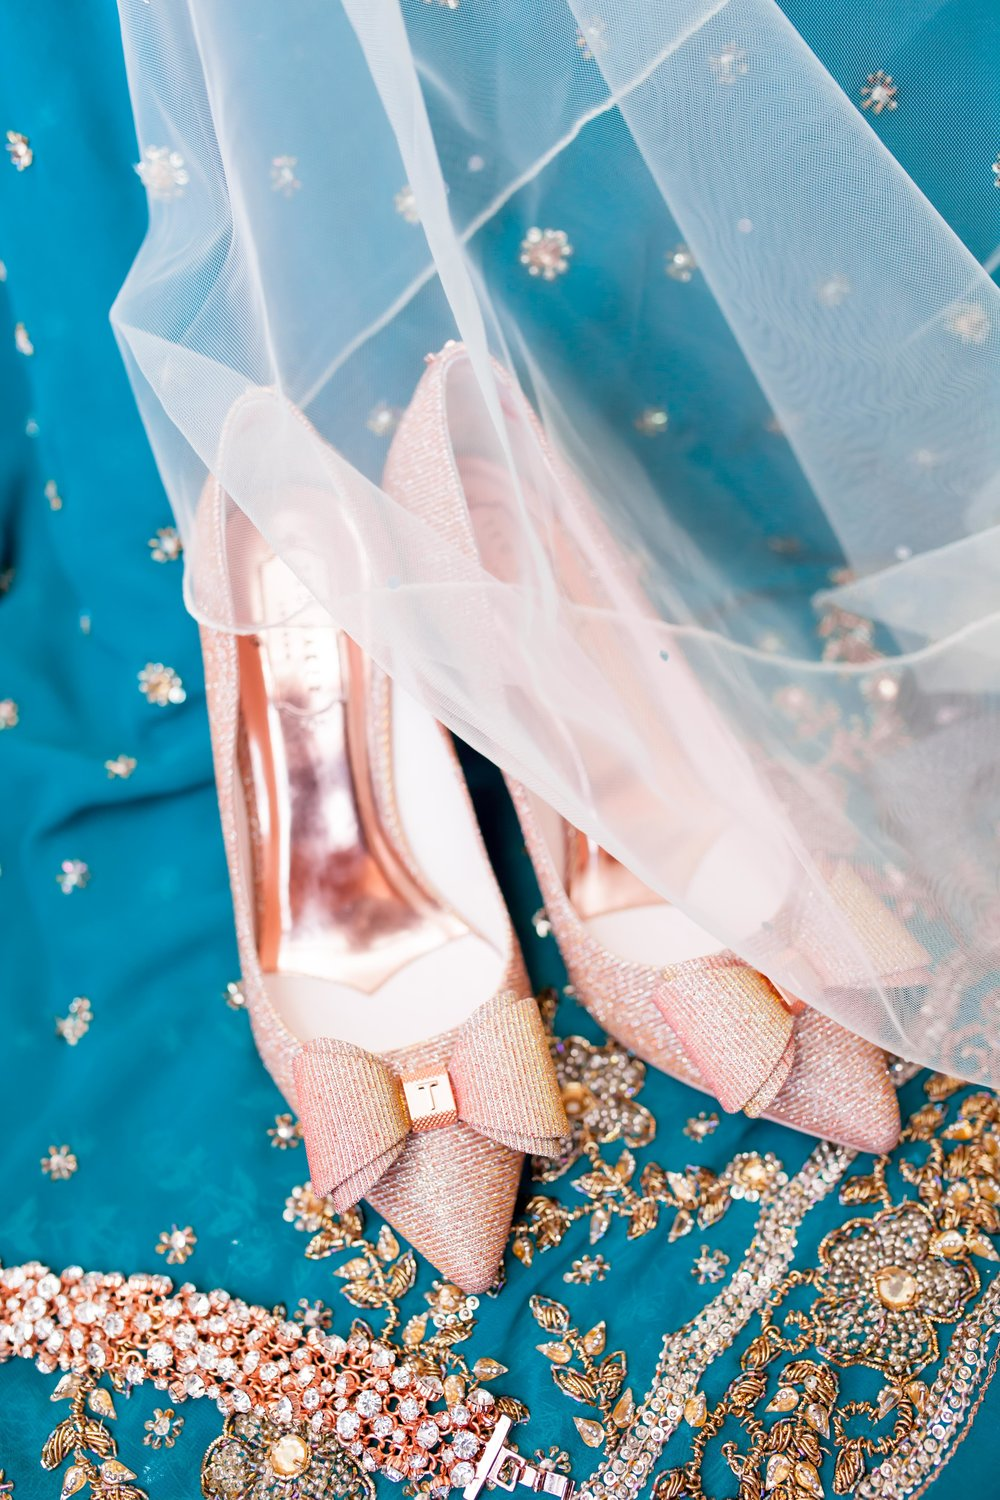 Toronto Wedding Photographer Glam Bright Photos Somali Weddings Habesha Eritrean Indian Kenyan Muslim Arab Ontario Ottawa Munaluchi Bride Karimah Gheddai Photography Eritrean Ethiopian International Destination Verdi Convention Airy Natural Light necklace ted baker bridal shoes Etobicoke pink